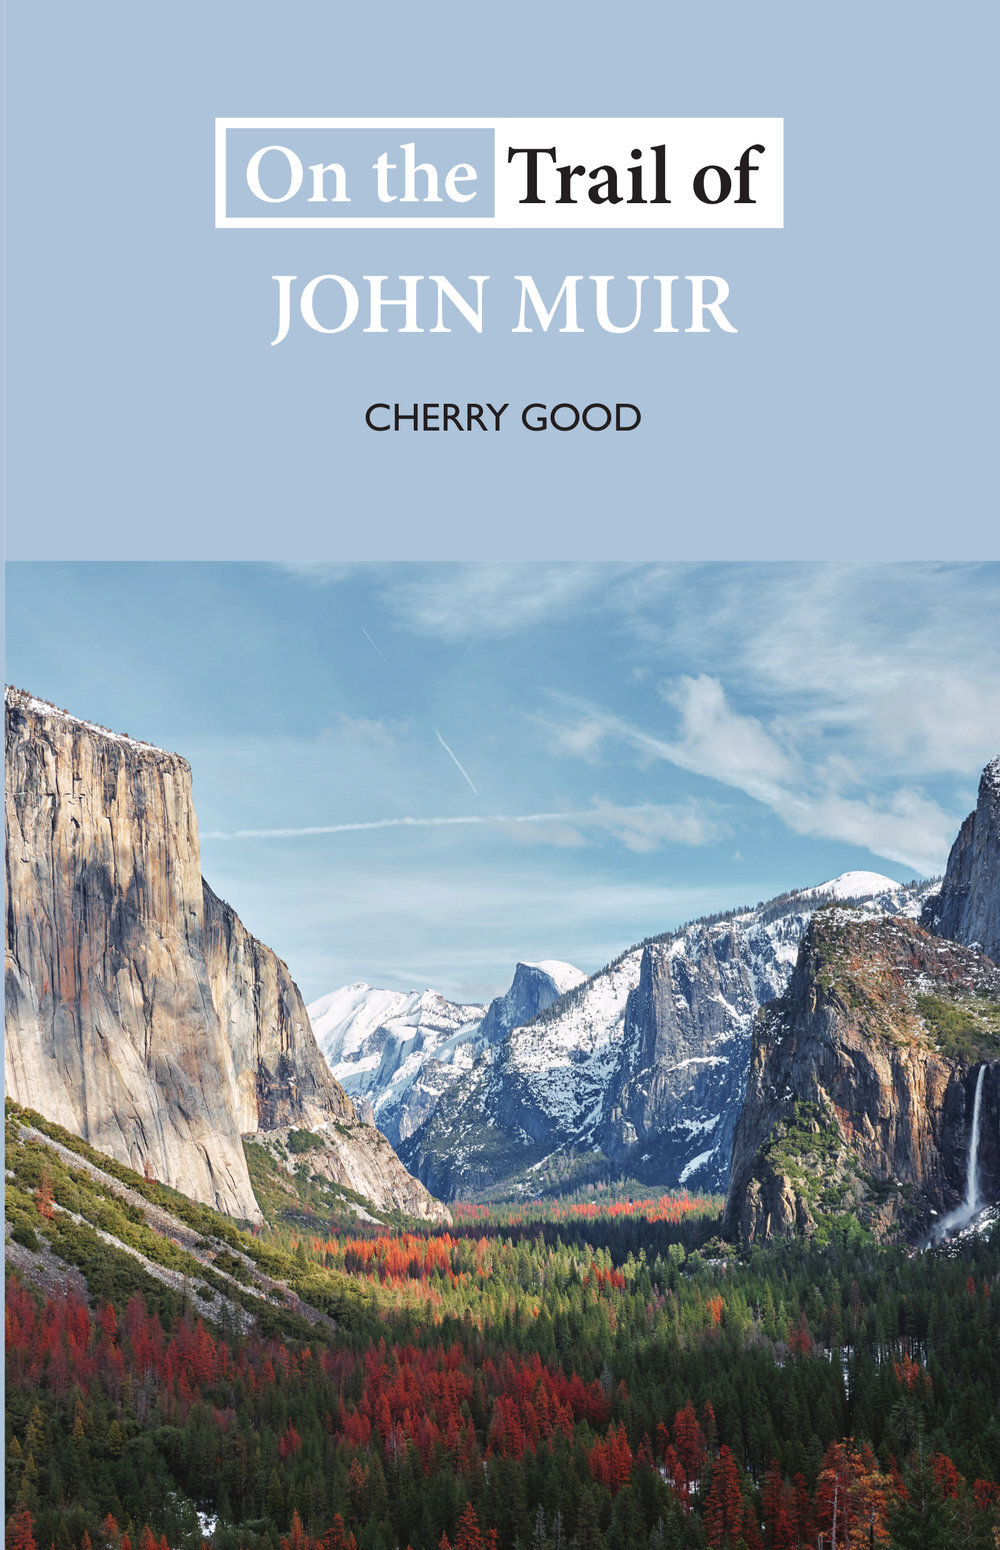 On+the+Trail+of+John+Muir+Cherry+Good+9781913025106+Luath+Press.jpg